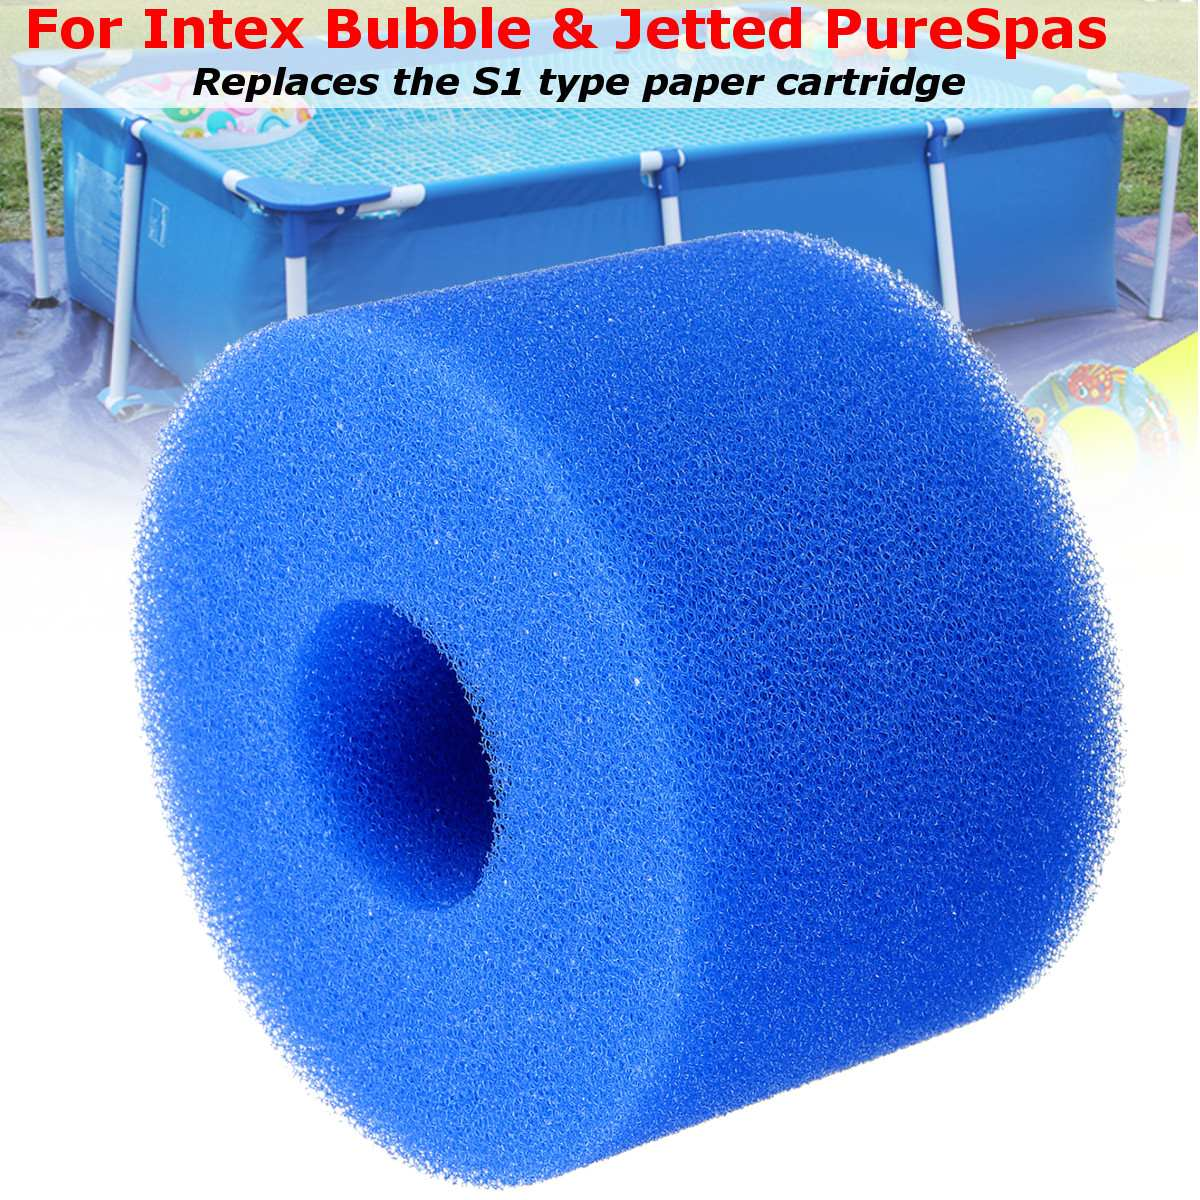 10.8*4*7.3cm Reusable Washable Swimming Pool Filter Foam Sponge Cartridge Foam Suitable Bubble Jetted Pure SPA For Intex S1 Type